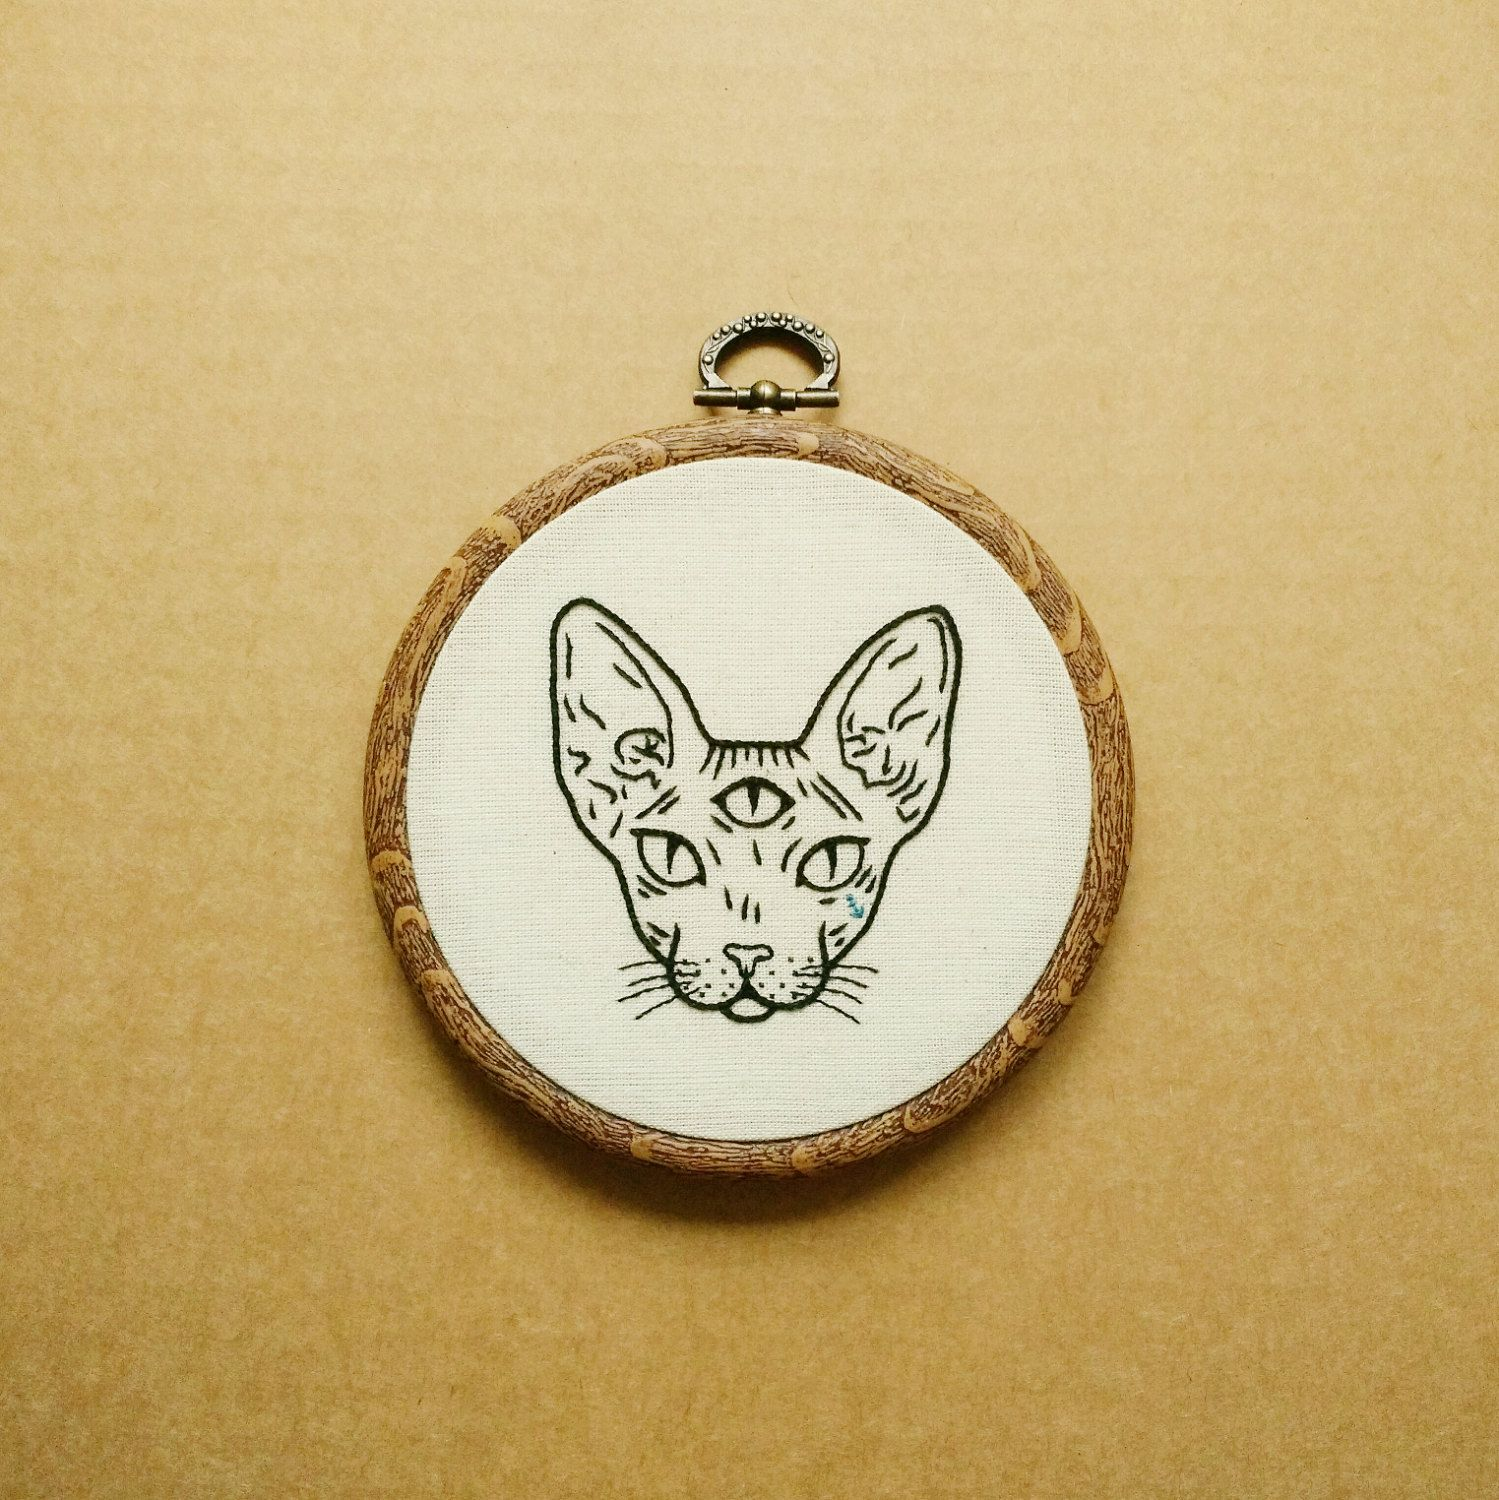 Three Eyed Sphynx Cat Hand Embroidery Hoop Art (embroidery wall ...